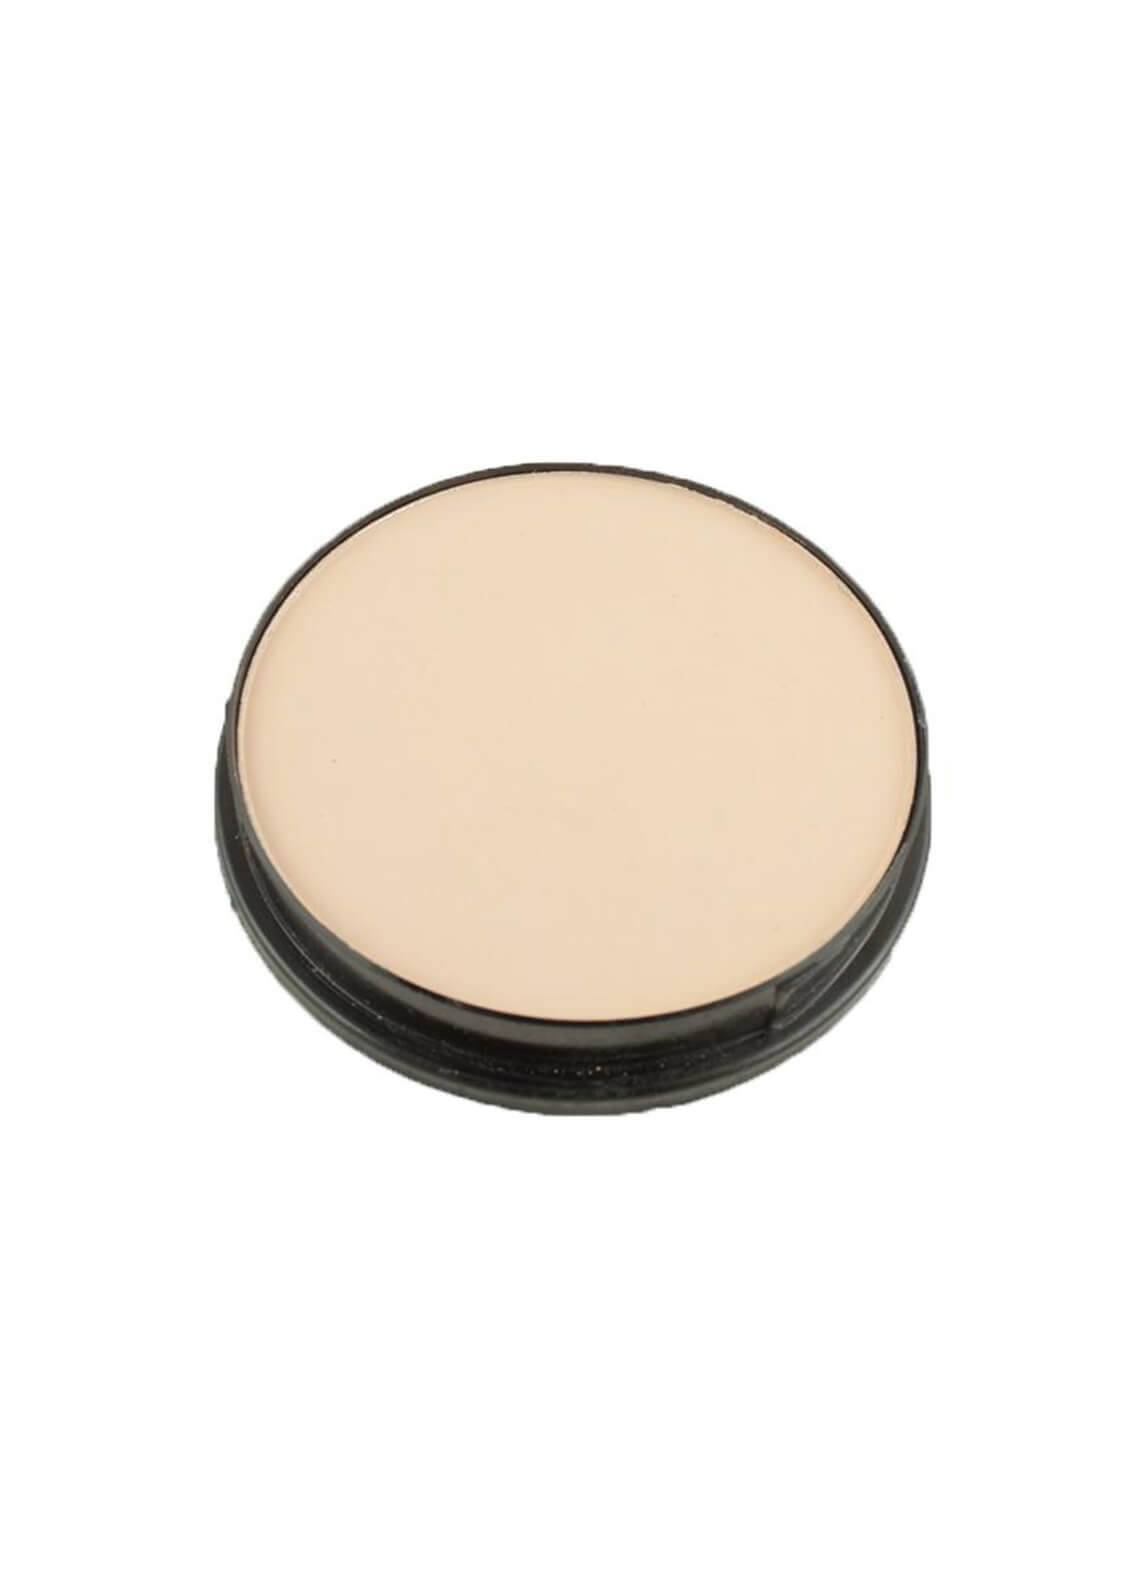 Sophia Asley Oil Free Pan Cake with SPF45 UV Protection - F1